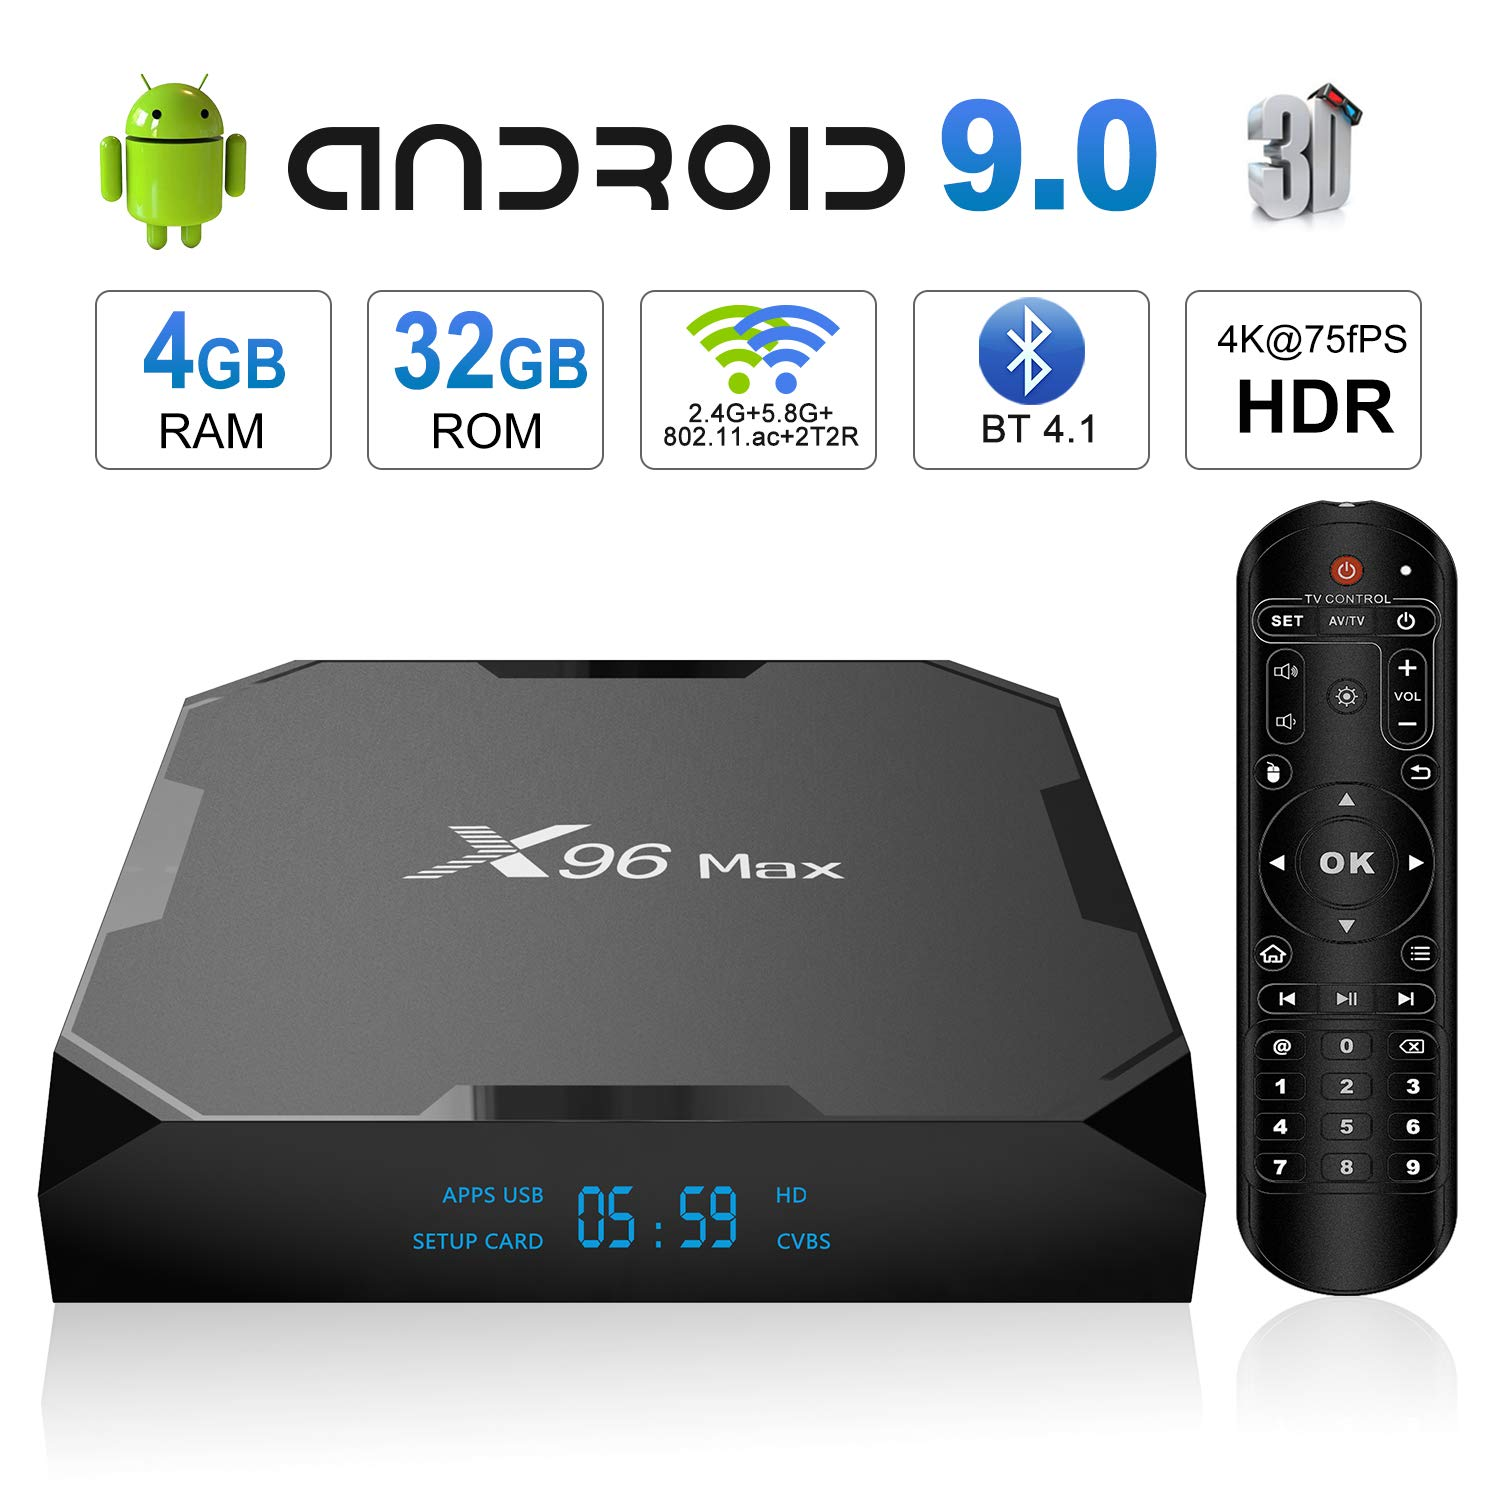 (Upgrade) Android 9.0 TV Box, X96 Max Android TV Box - 4GB RAM 32GB ROM Amlogic S905X2 Quad-core 64 Bits, Dual WiFi 2.4G+5G/1000M Ethernet/BT 4.1/USB 3.0/H.265 3D 4K@75fps Smart Media Player OTT Box by SUPVIN